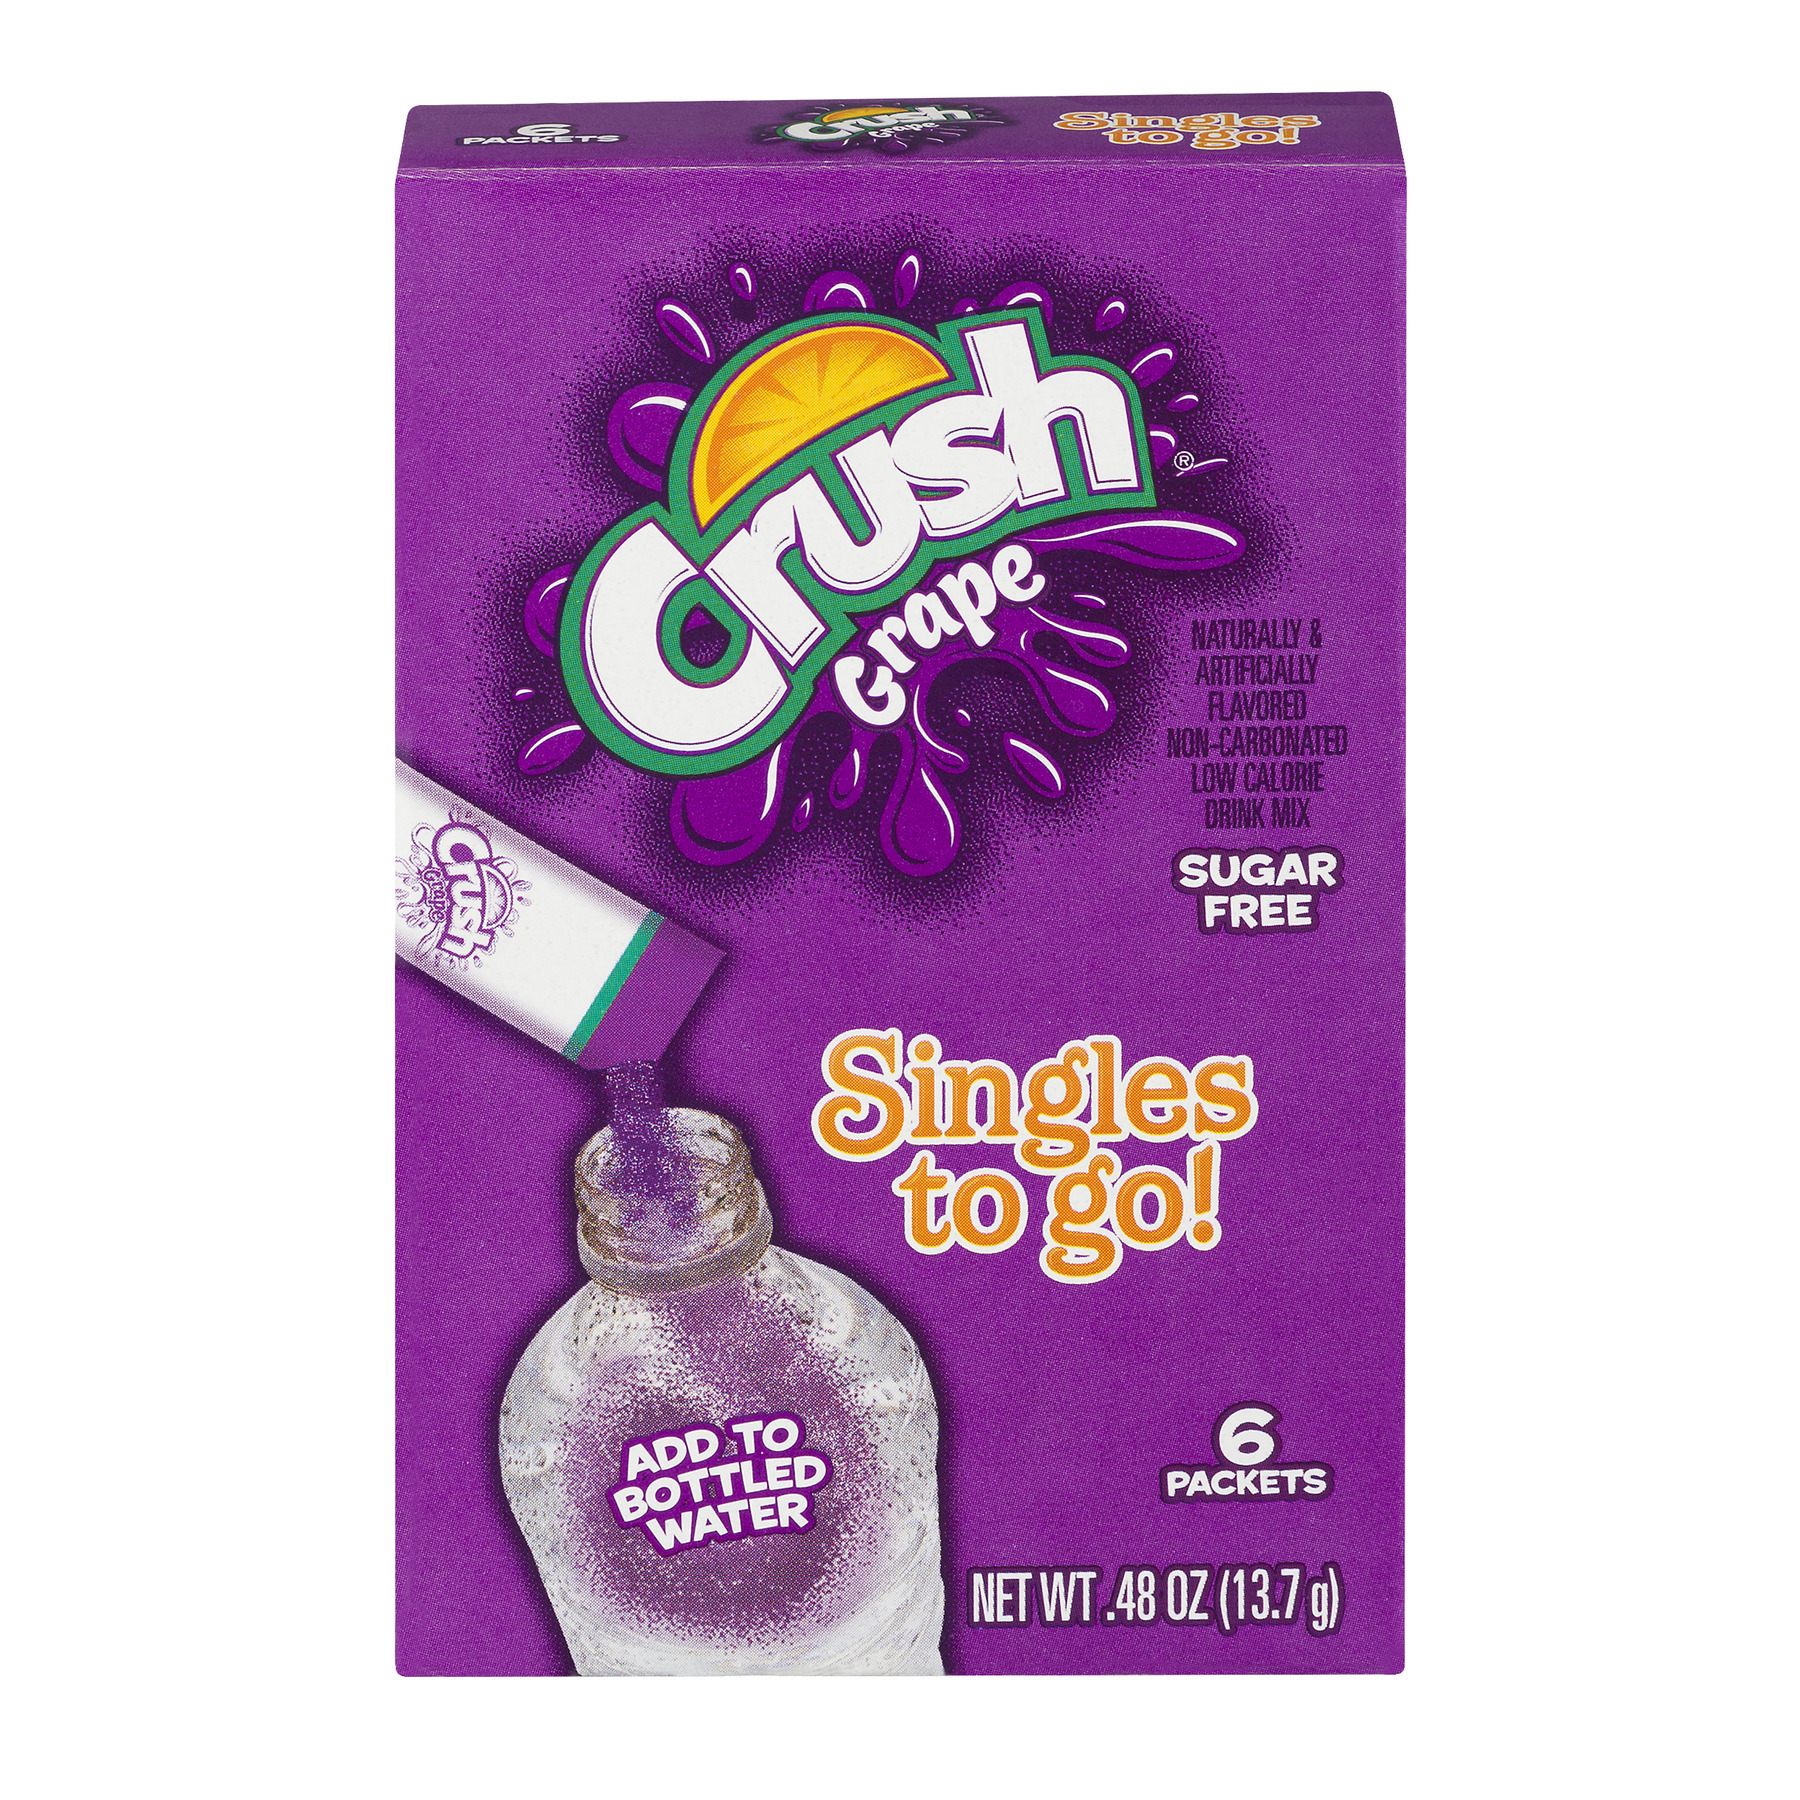 Crush Singles To Go! Low Calorie Drink Mix Sugar Free Grape - 6 PK, 0.48 OZ